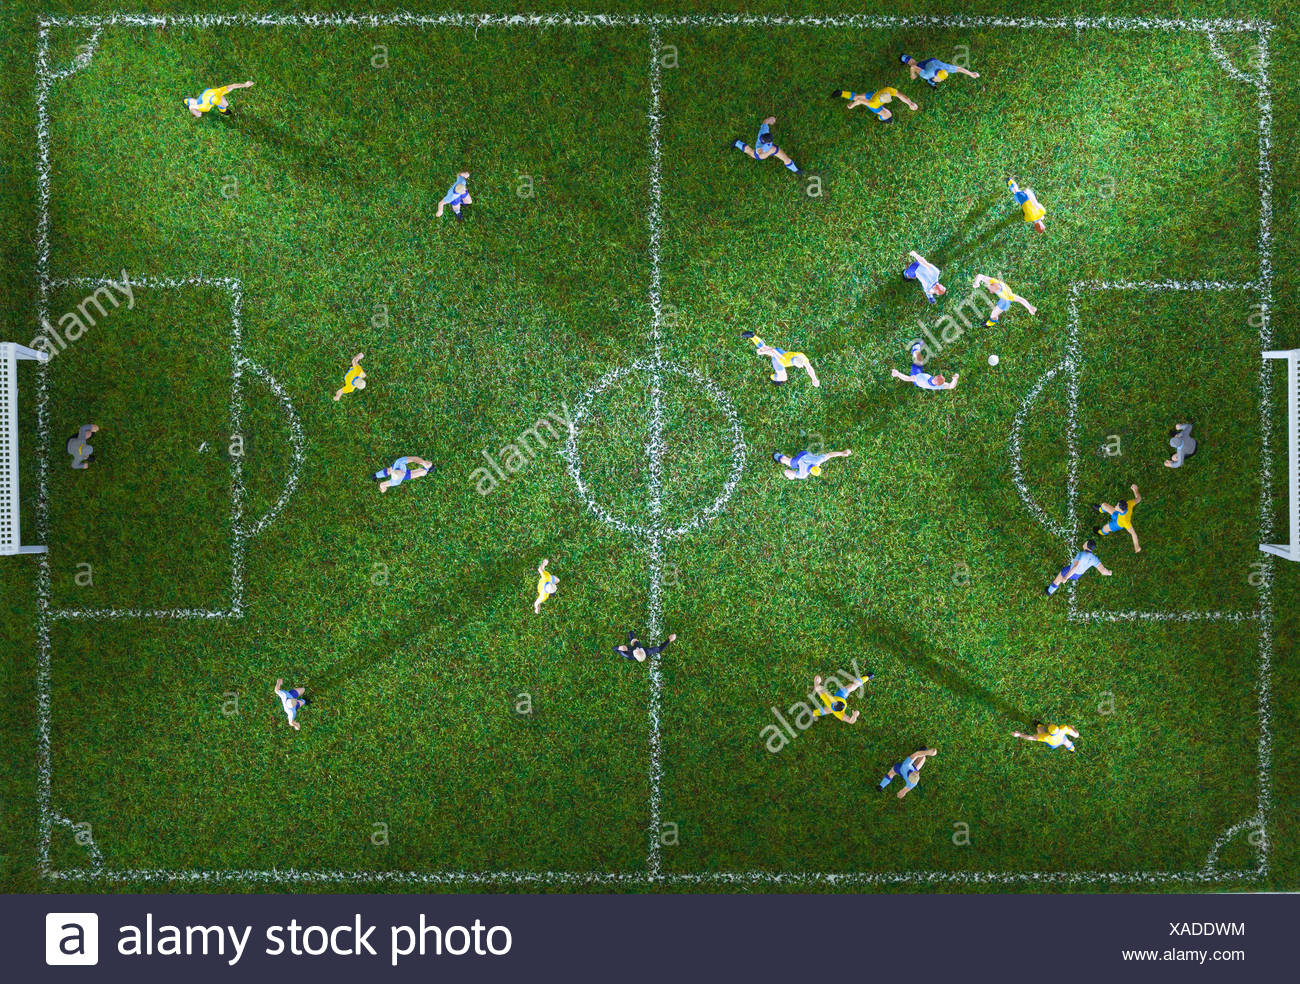 Miniature figurines of two soccer teams playing a soccer match, directly above - Stock Image